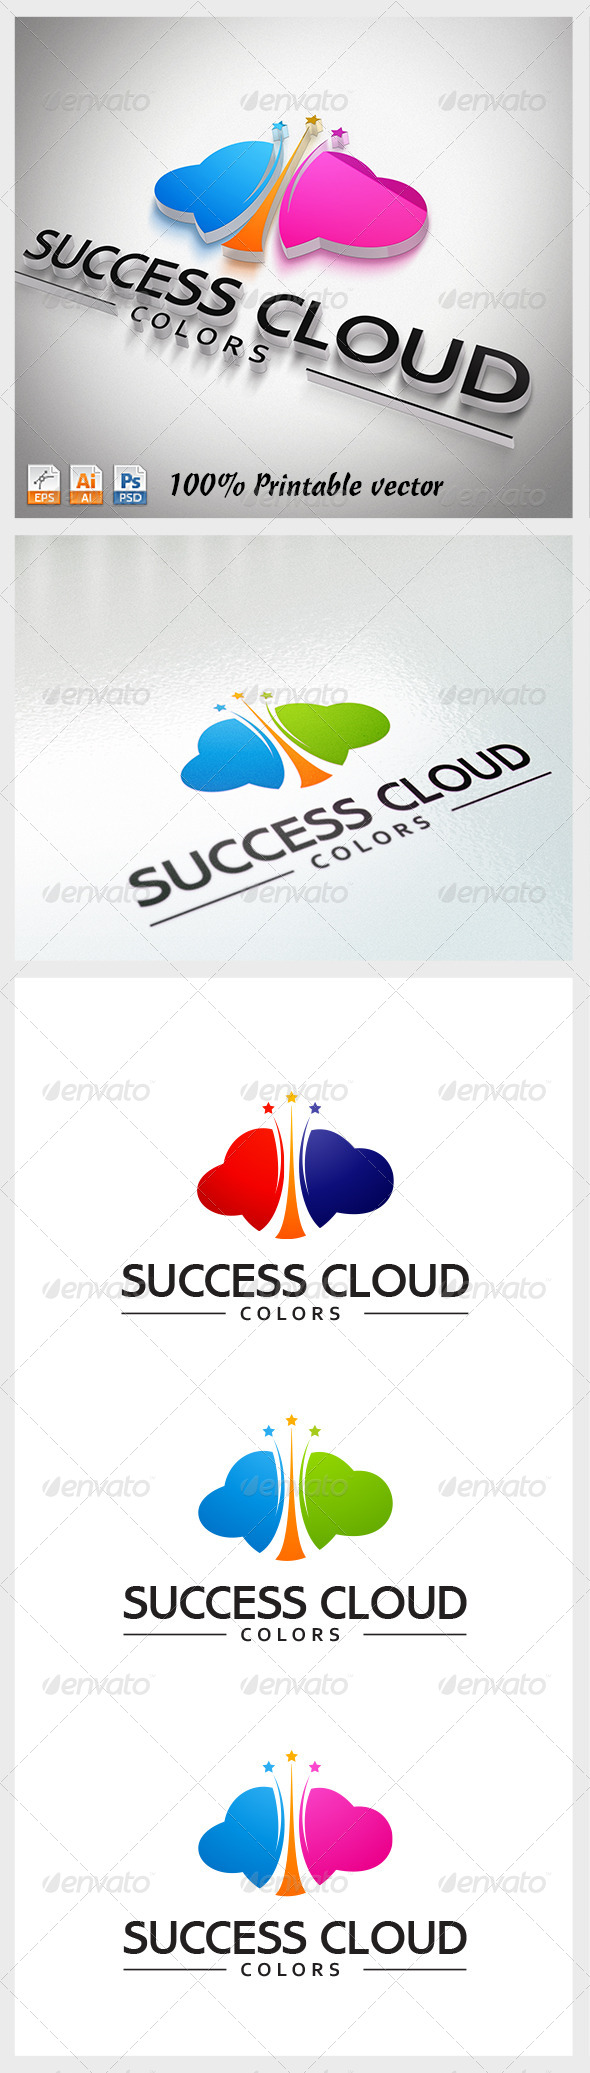 Success Cloud Logo - Abstract Logo Templates